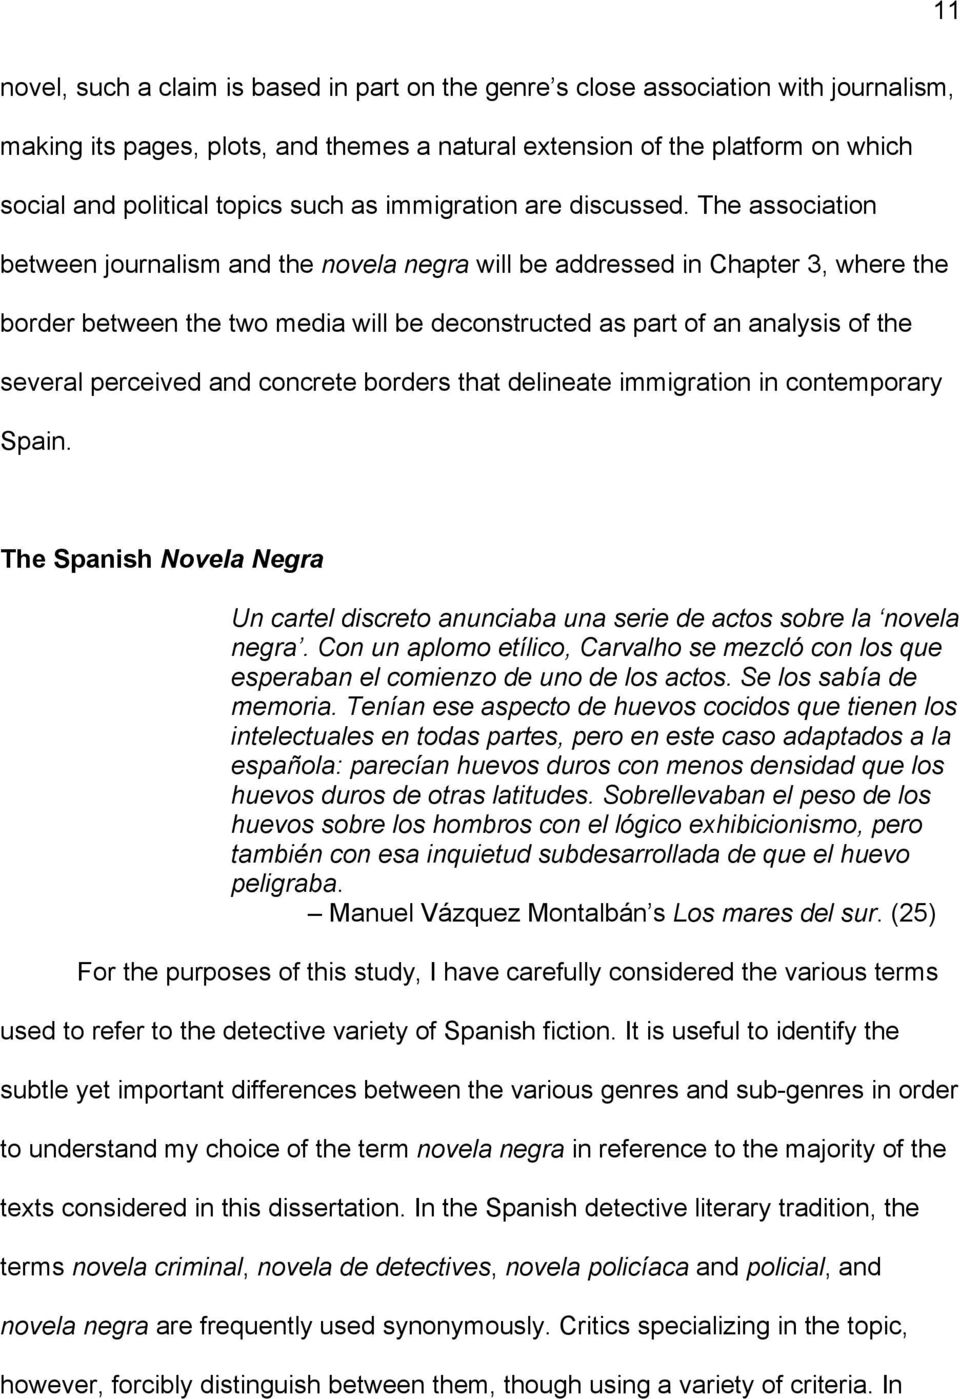 The association between journalism and the novela negra will be addressed in Chapter 3, where the border between the two media will be deconstructed as part of an analysis of the several perceived